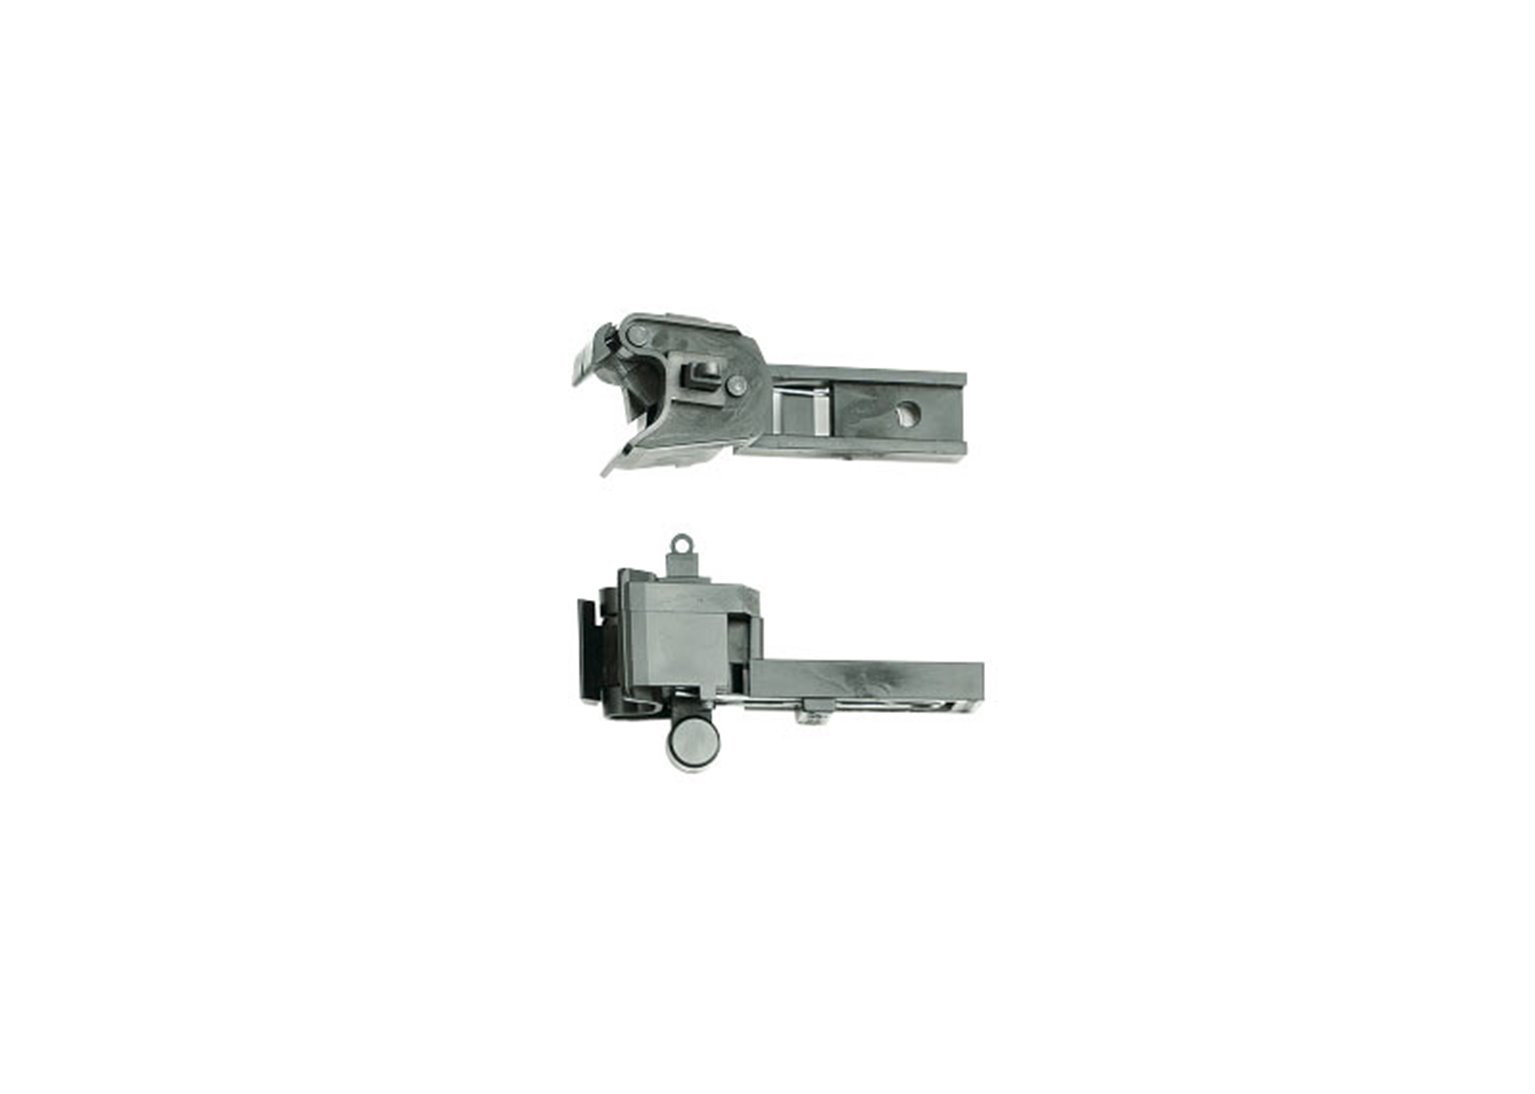 Knuckle Couplers, Type 2 - 2 pieces